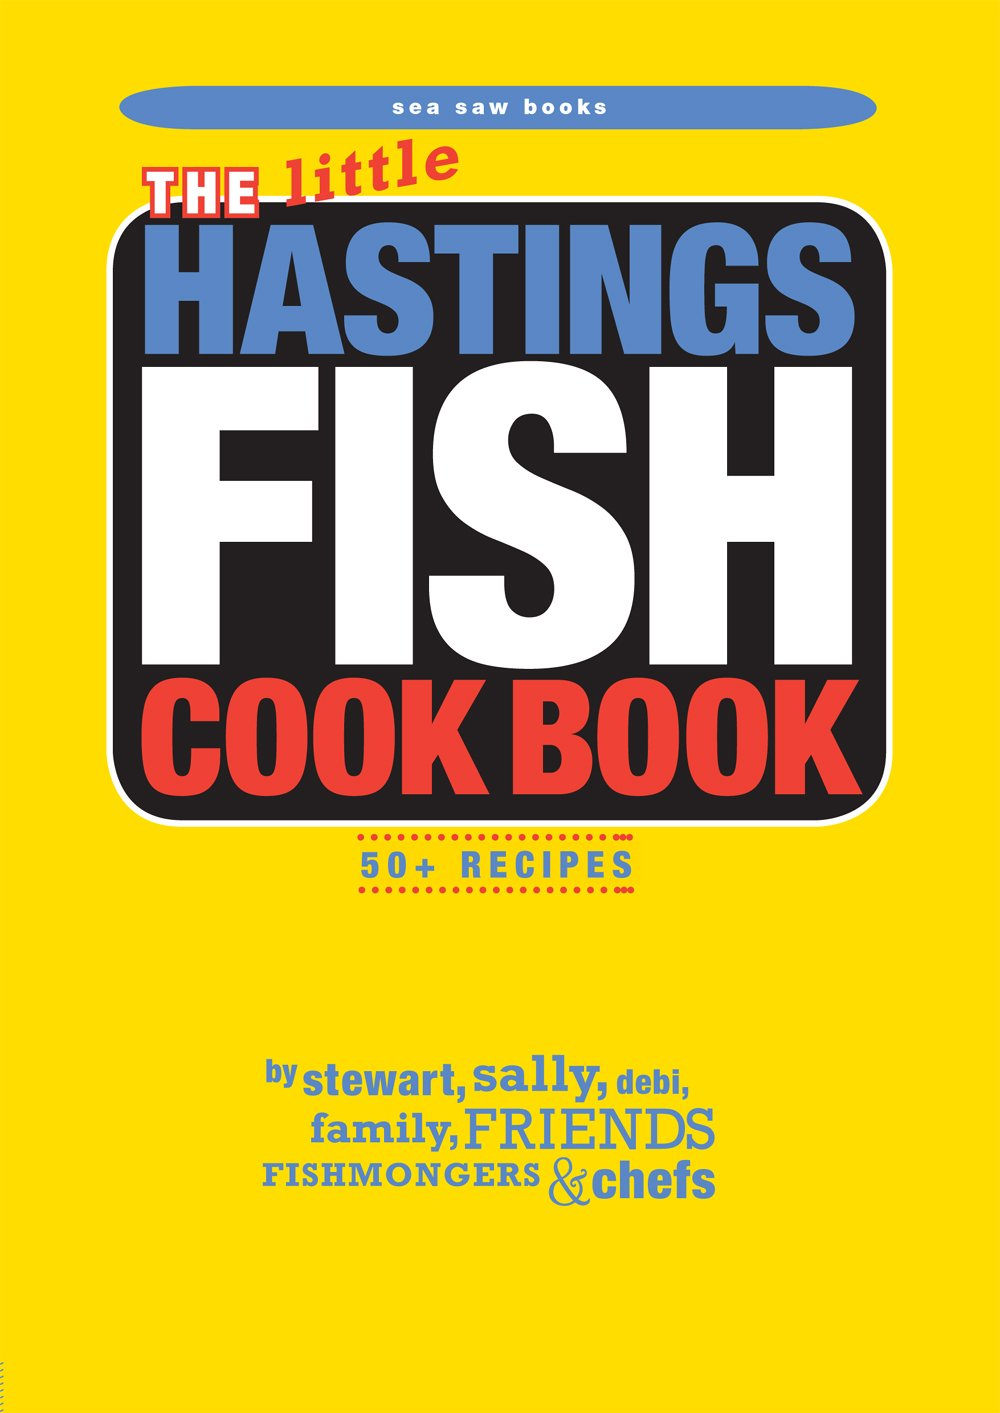 Image OfThe Hastings Fish Cook Book